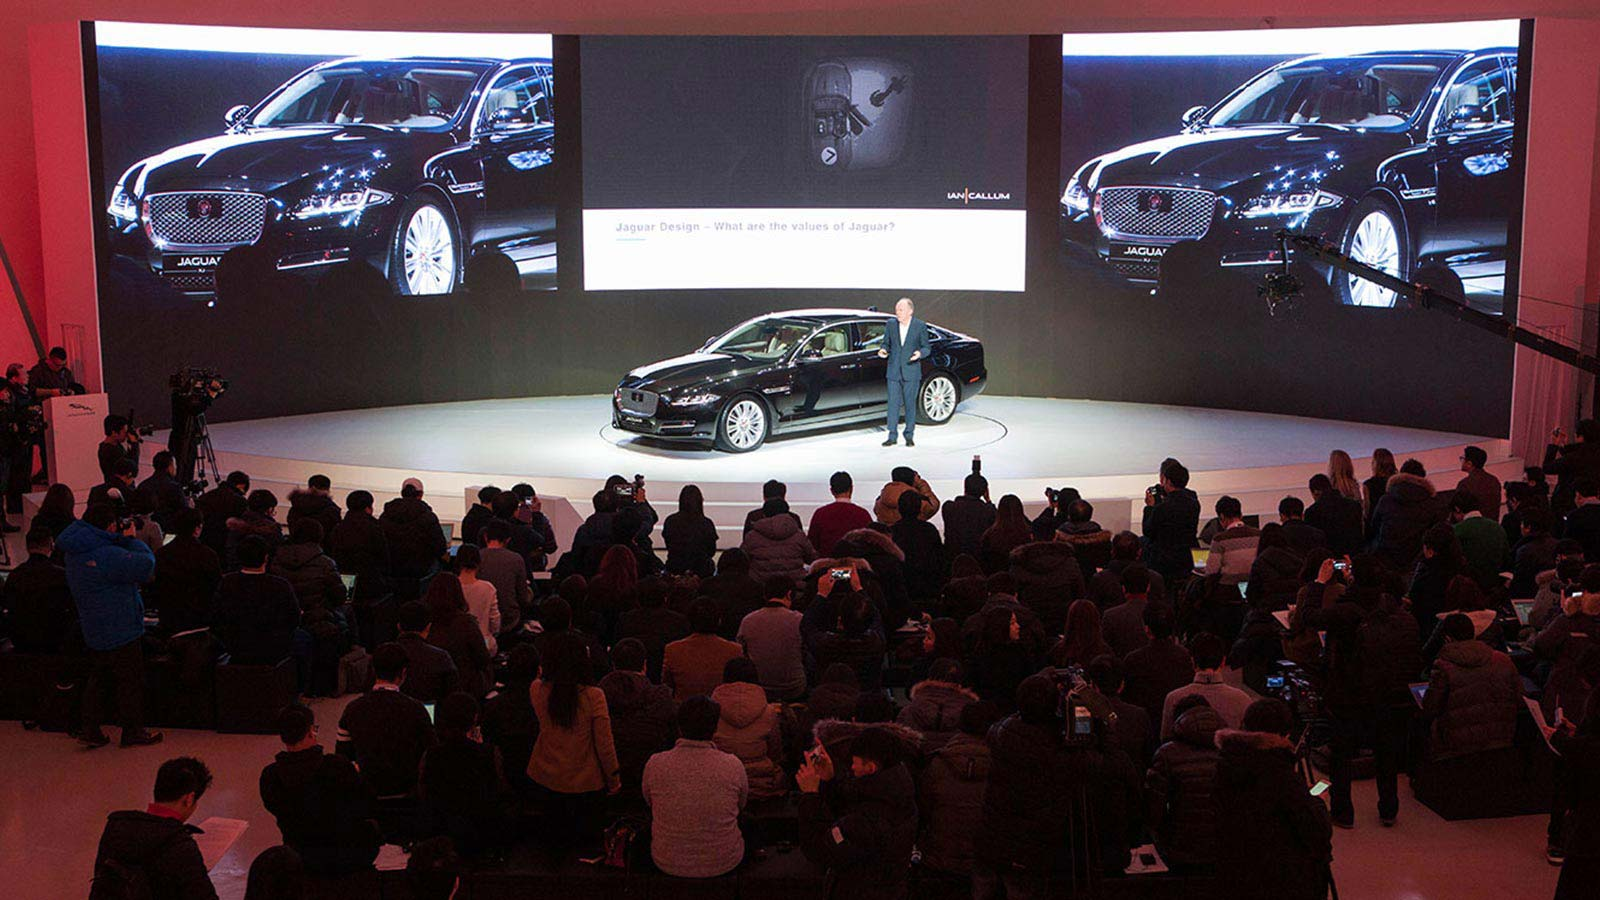 Director of Design, Ian Callum, giving a talk on stage next to a Jaguar XJ in black.